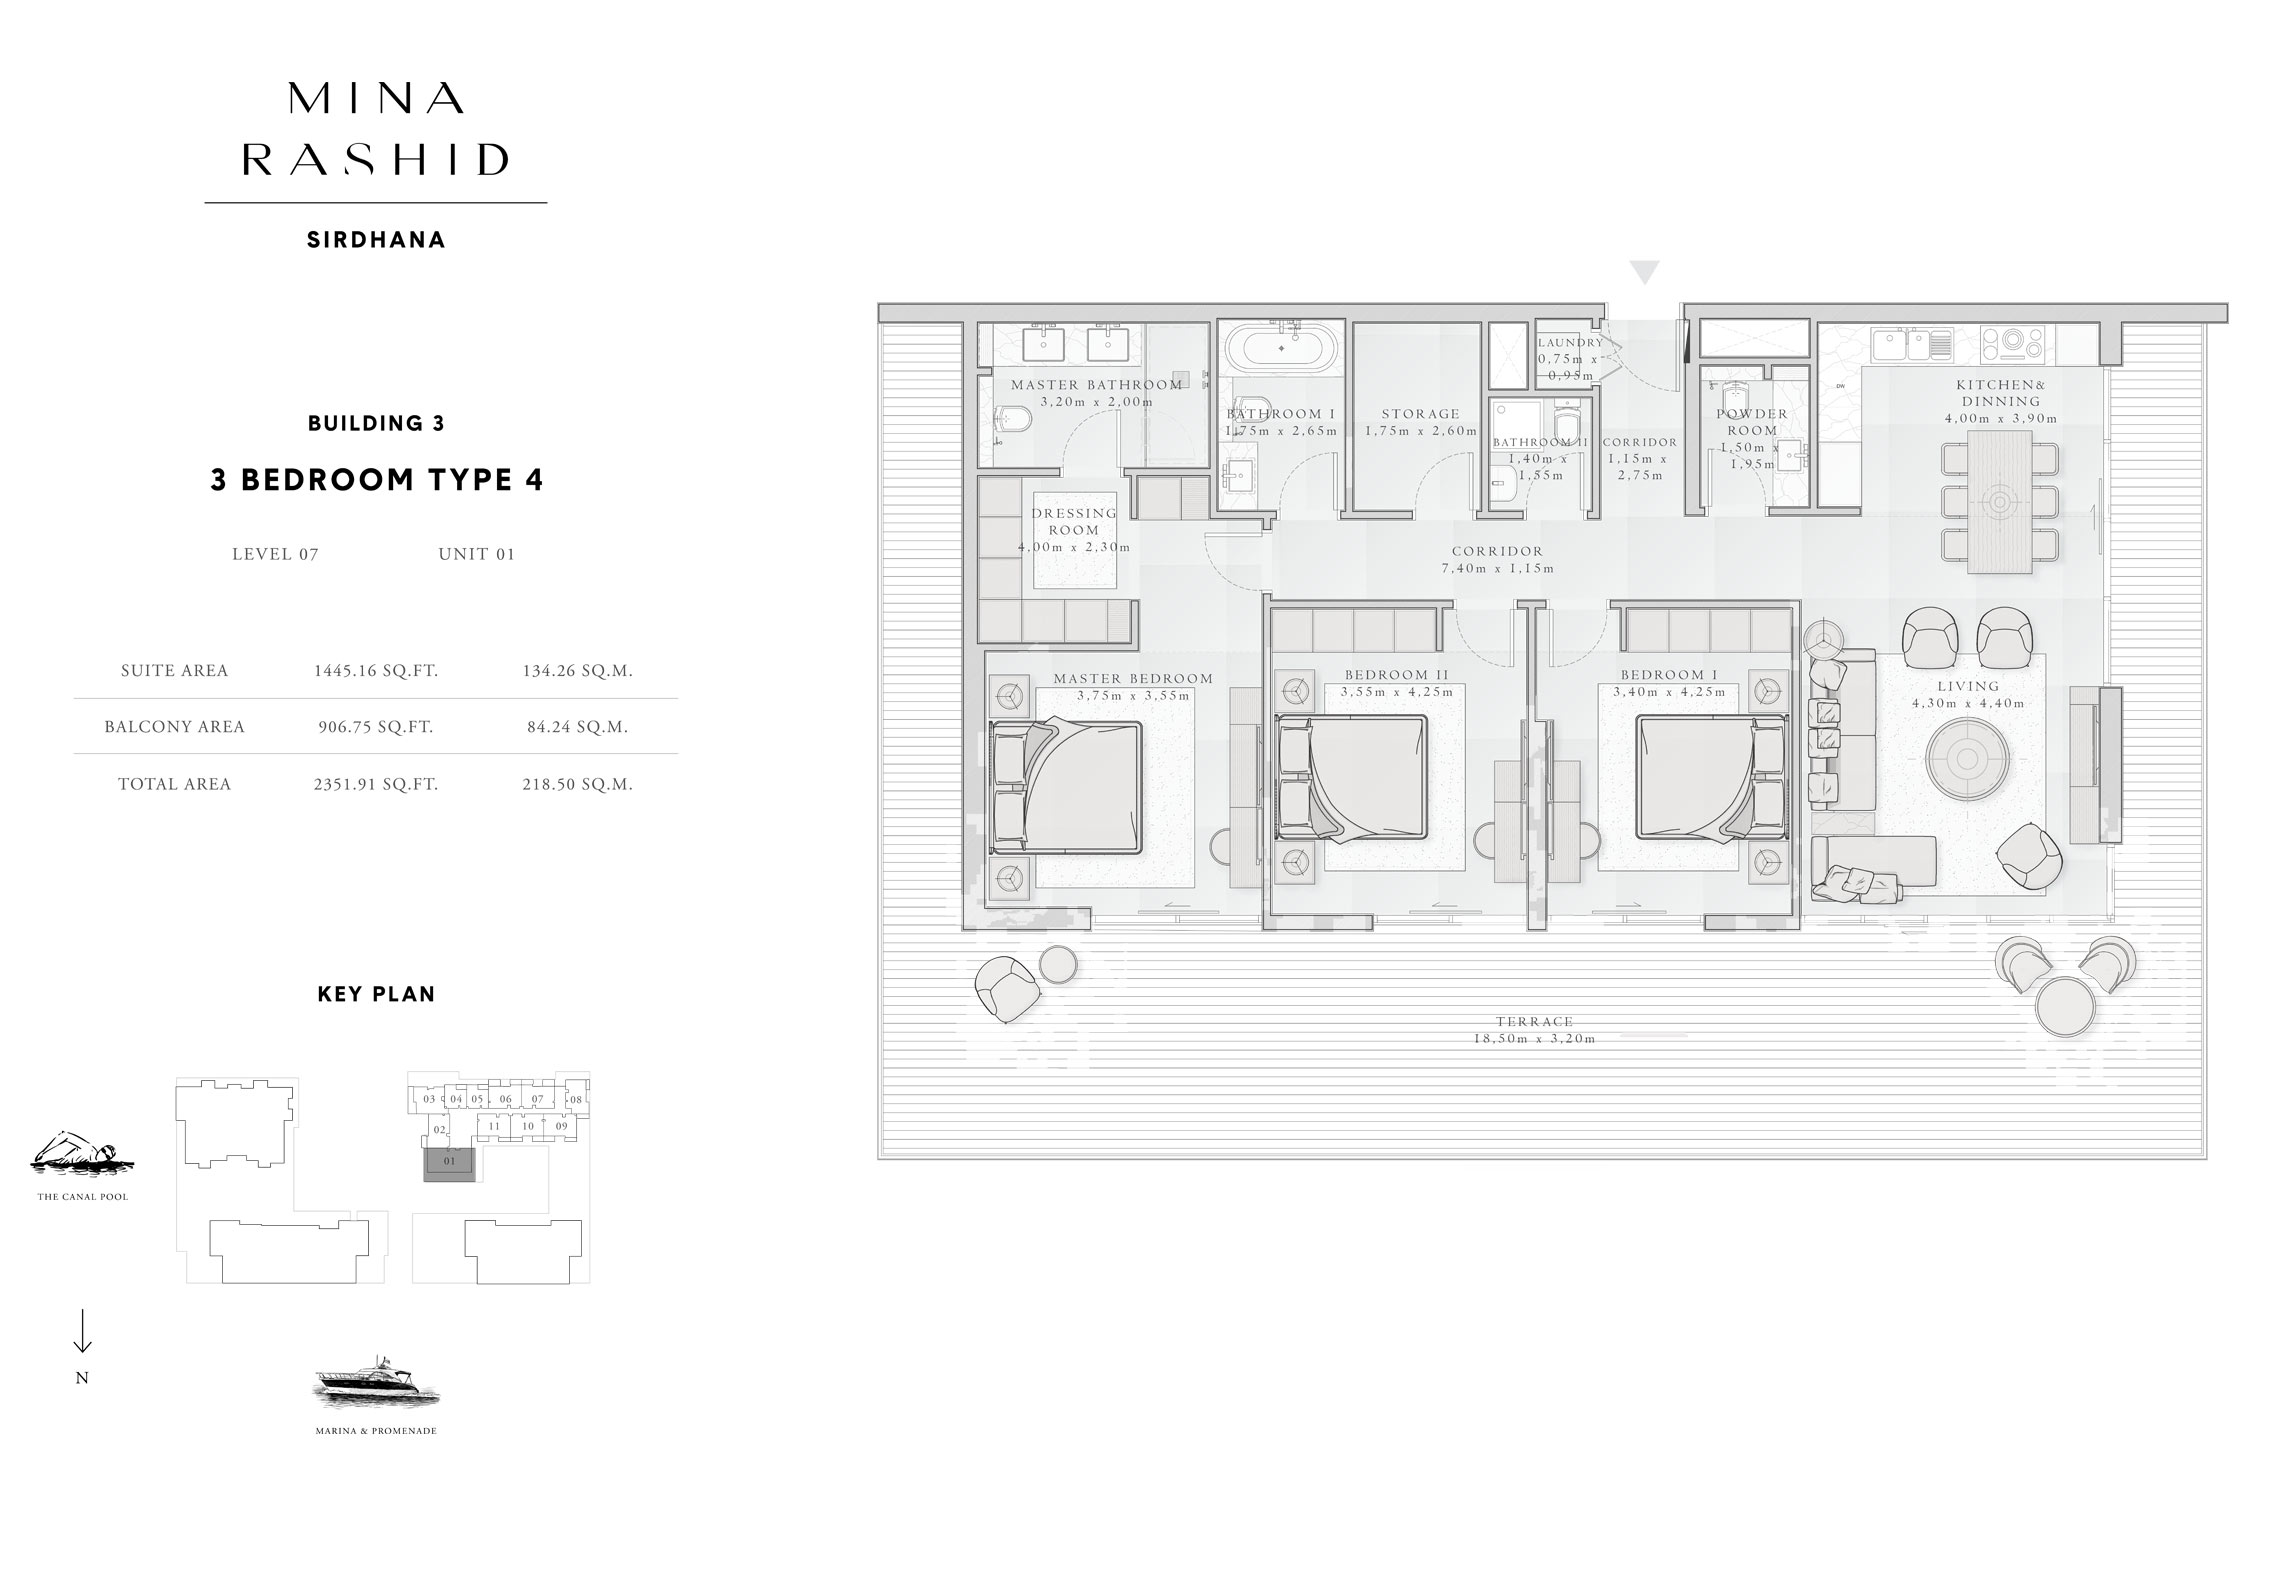 3-Bedroom-Type-4, Building-3, Level-7, Size-2351-Sq-Ft